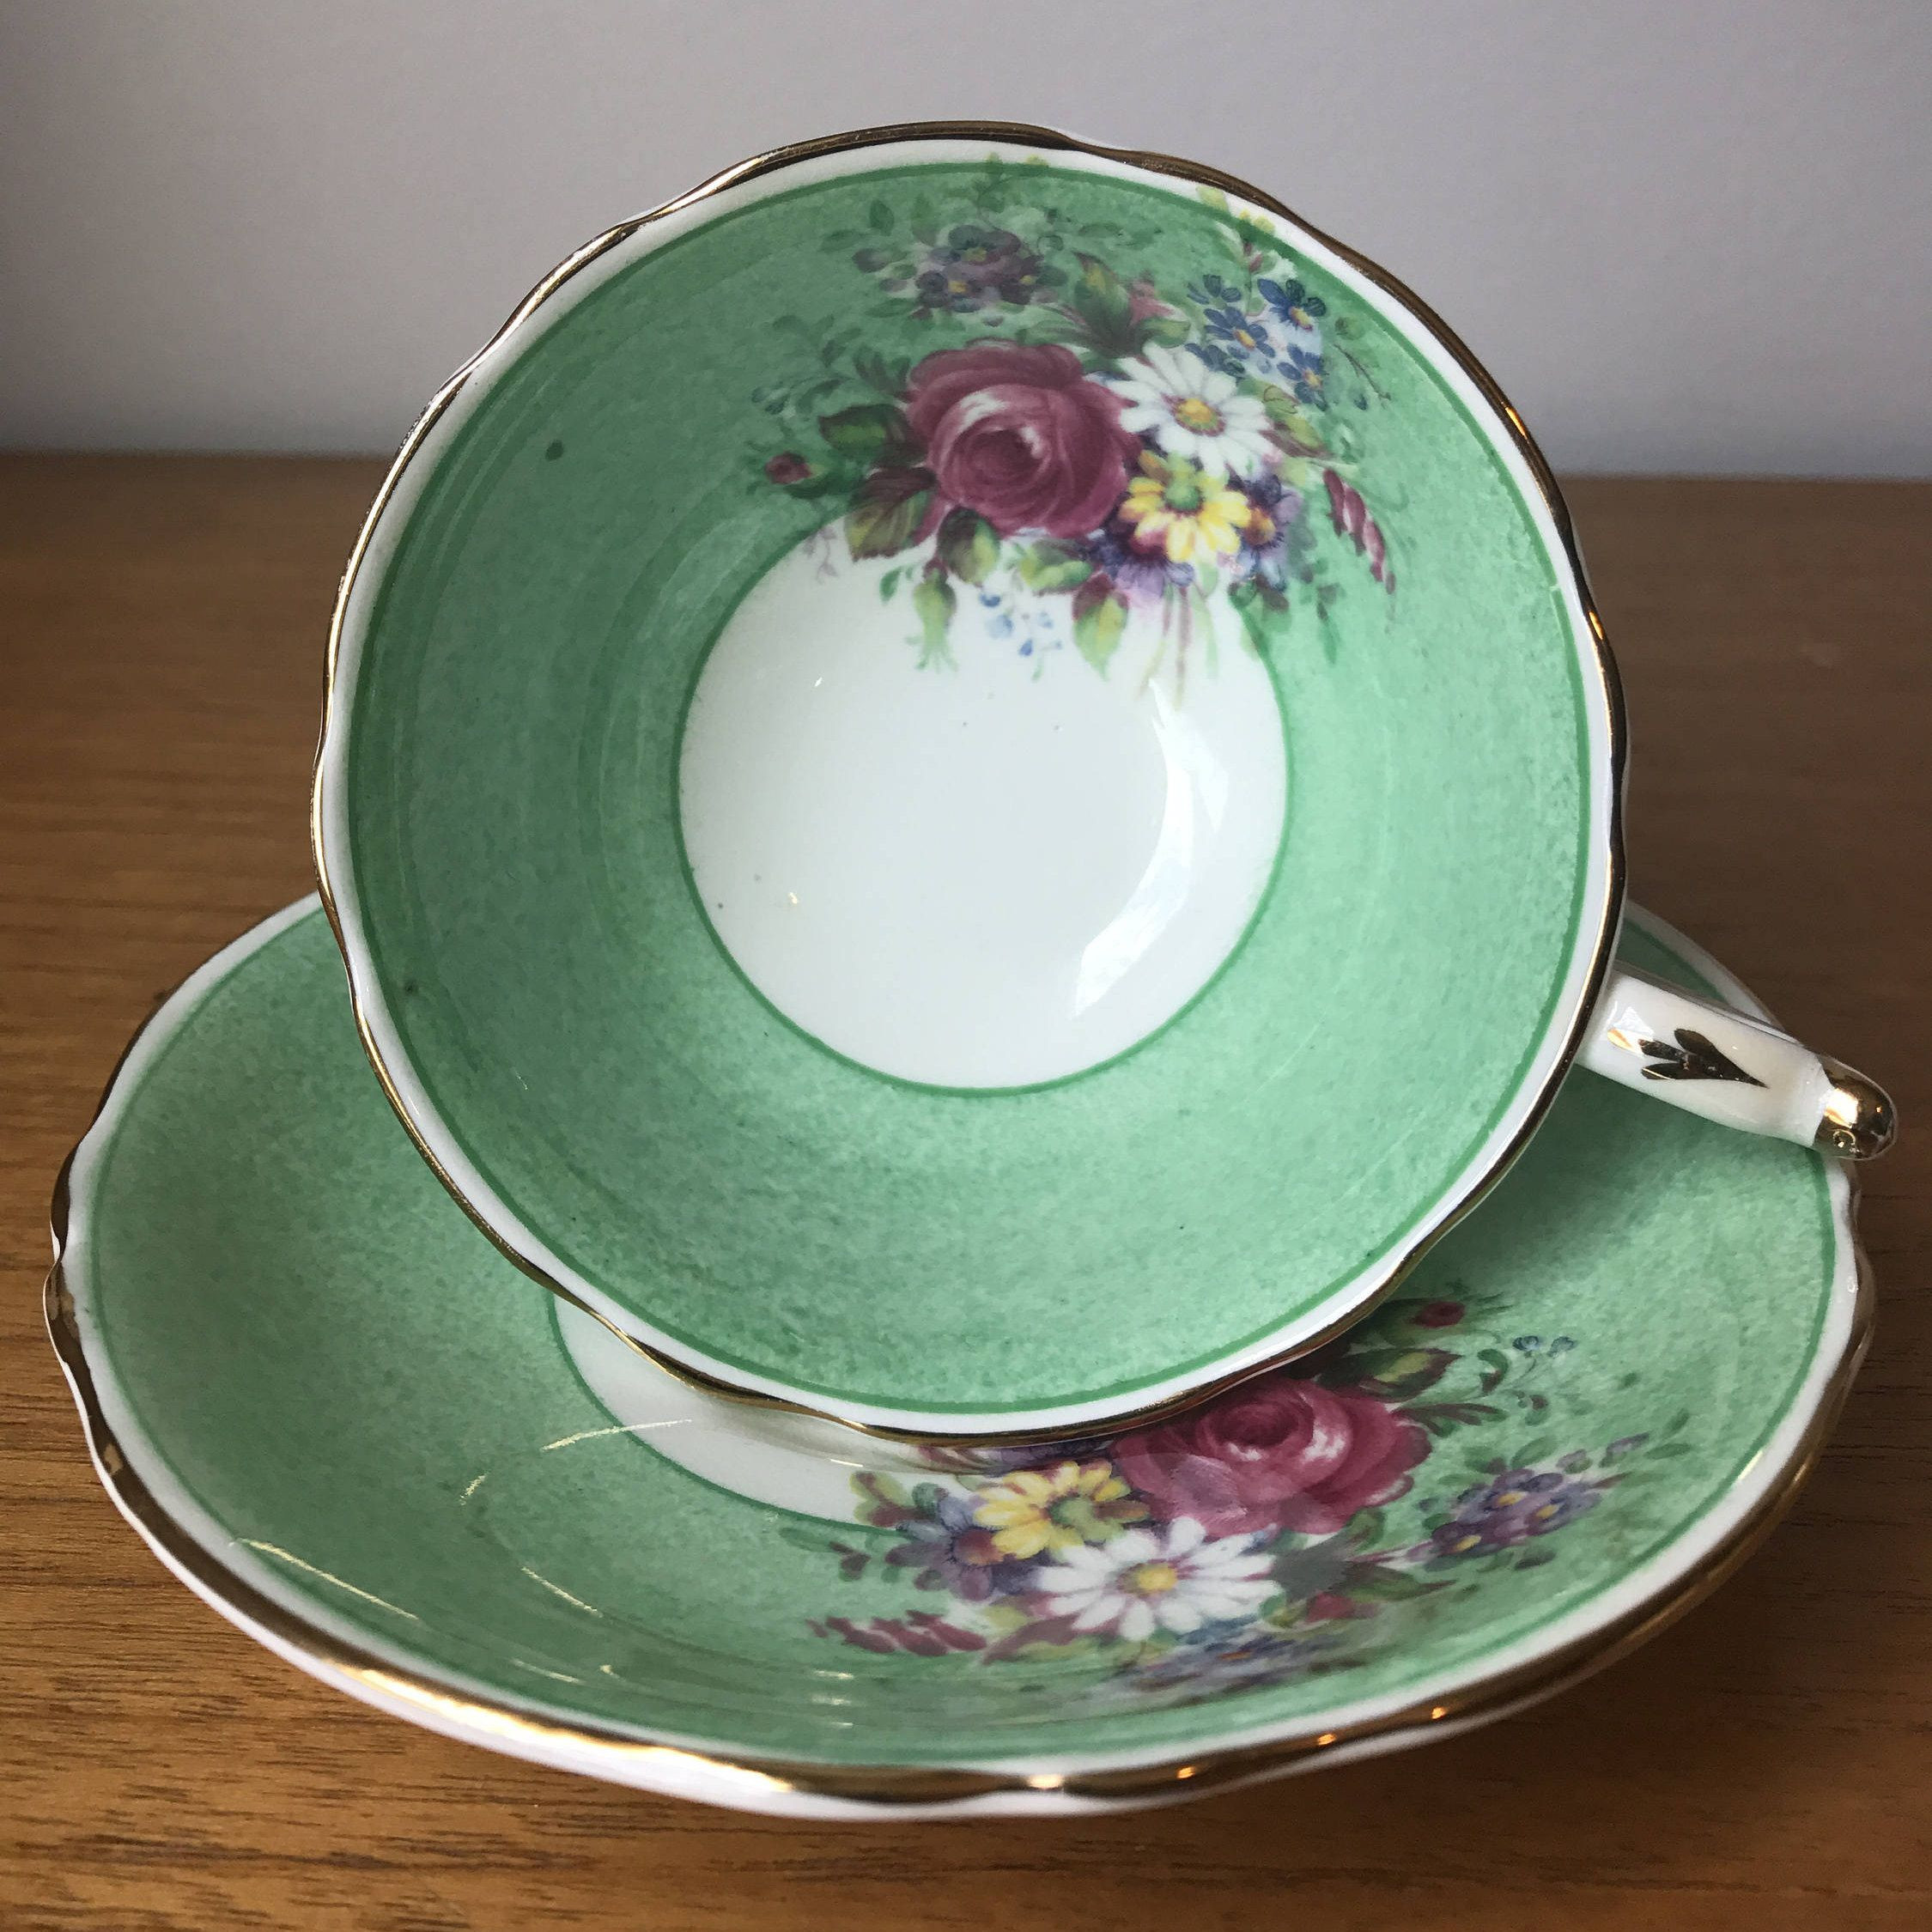 teapot flower vase of vintage english paragon tea cup and saucer speckled green border throughout vintage english paragon tea cup and saucer speckled green border flower teacup and saucer set bone china garden tea party by cupandowl on etsy